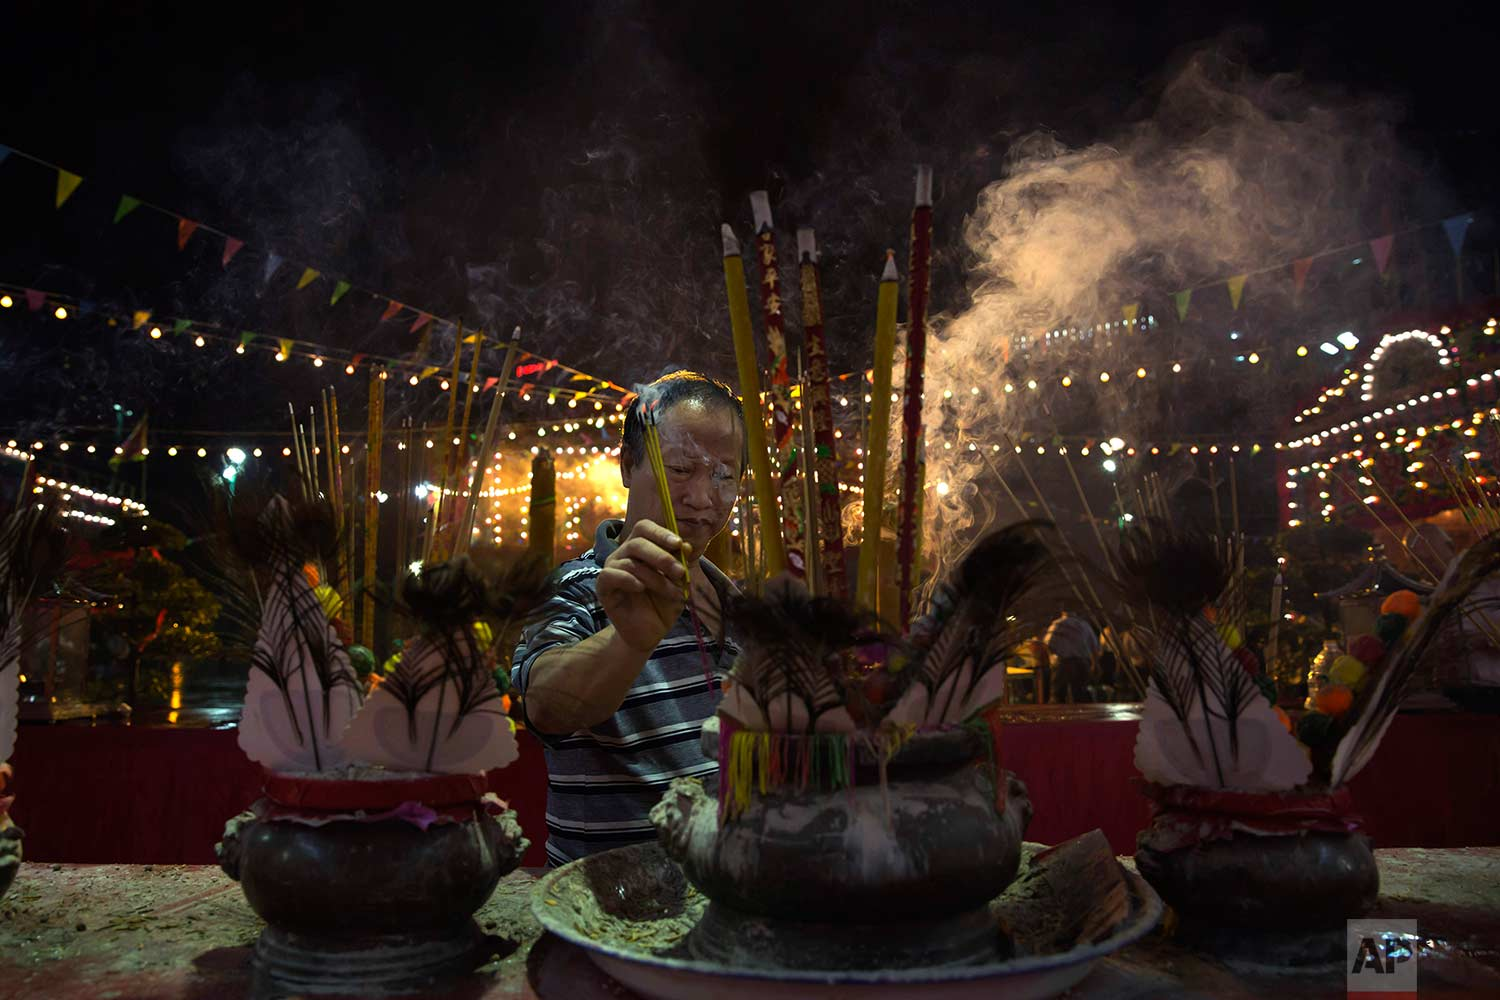 """In this Sept. 3, 2017, photo, a worshiper burns incense during the """"Hungry Ghost Festival"""" in Hong Kong. (AP Photo/Kin Cheung)"""